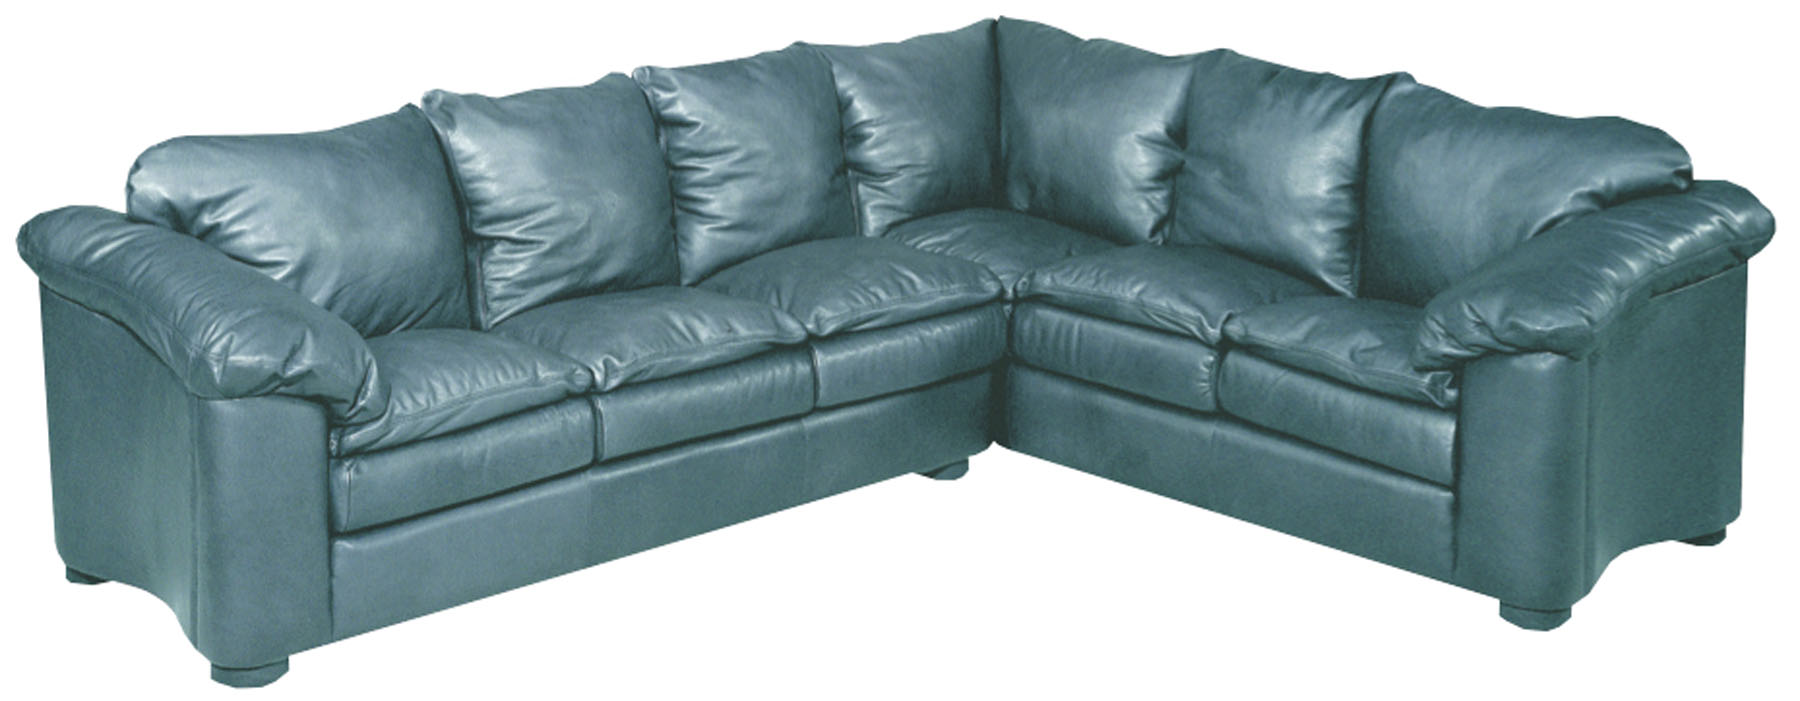 Product Description. Winchester – Leather Sectional